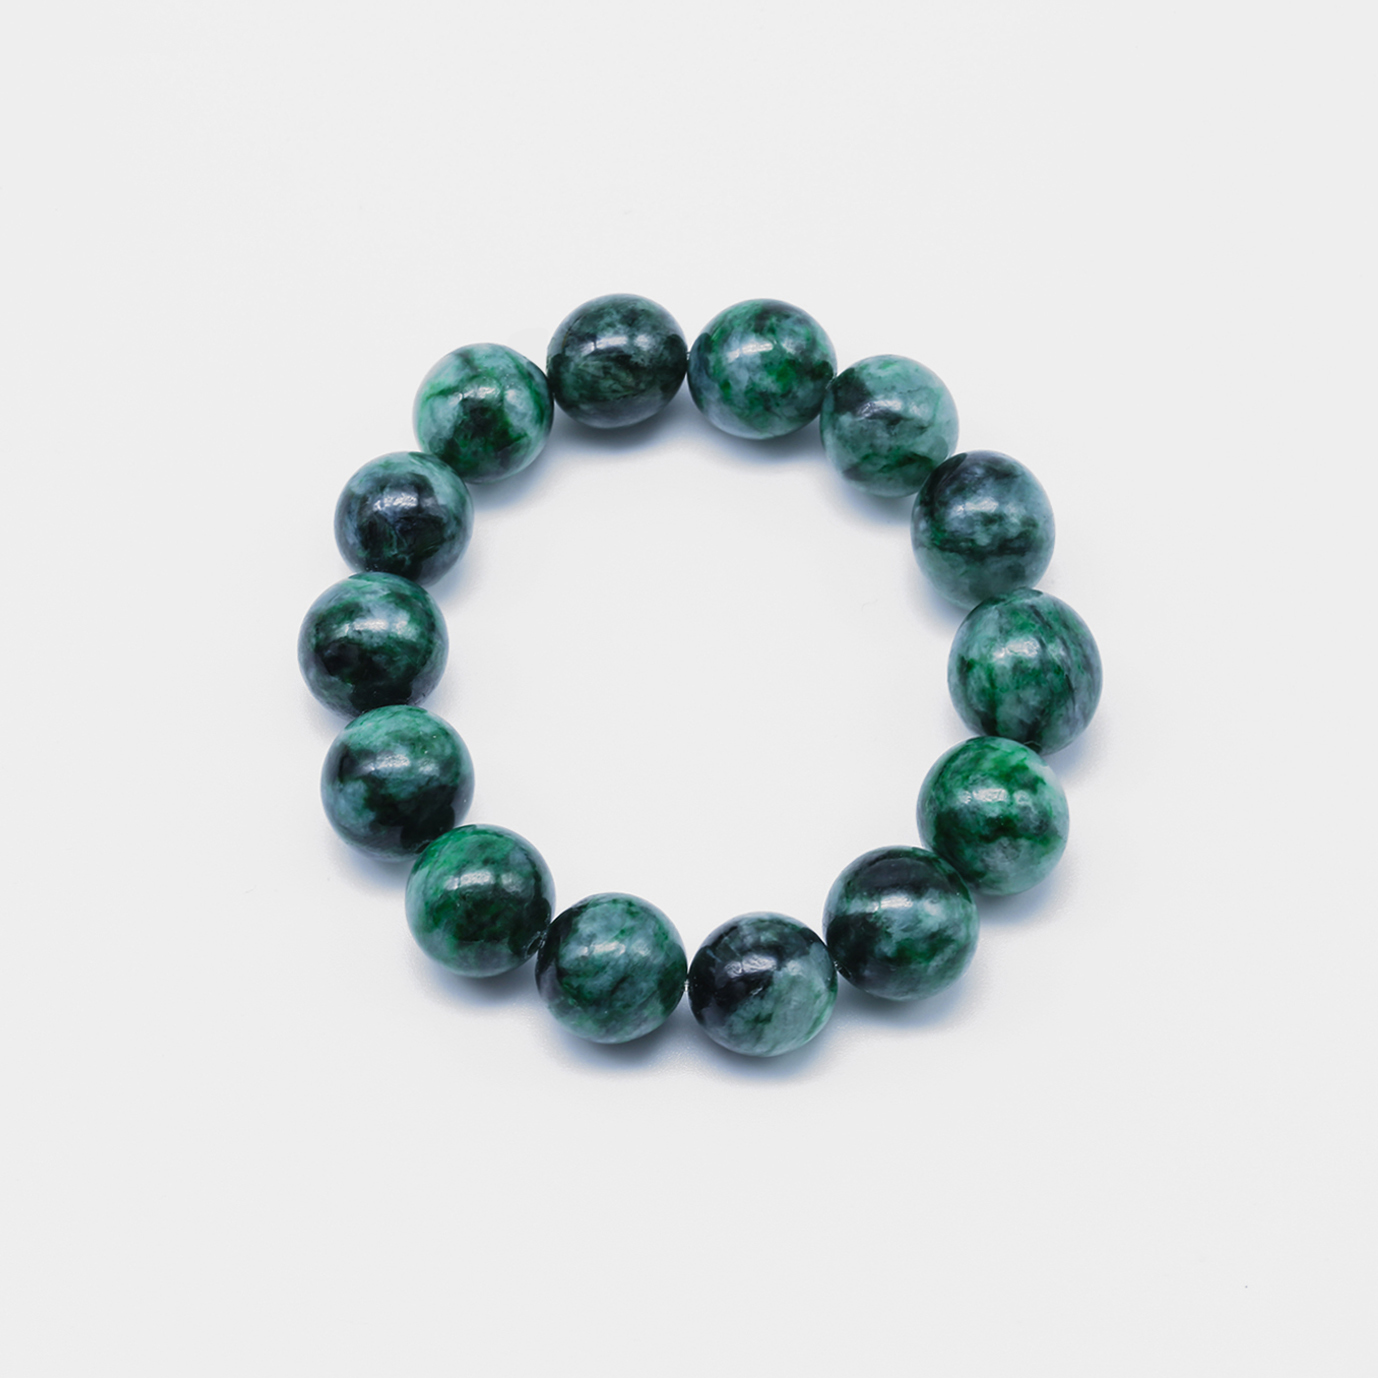 Splashes of Green Jadeite Jade Bead Bracelet